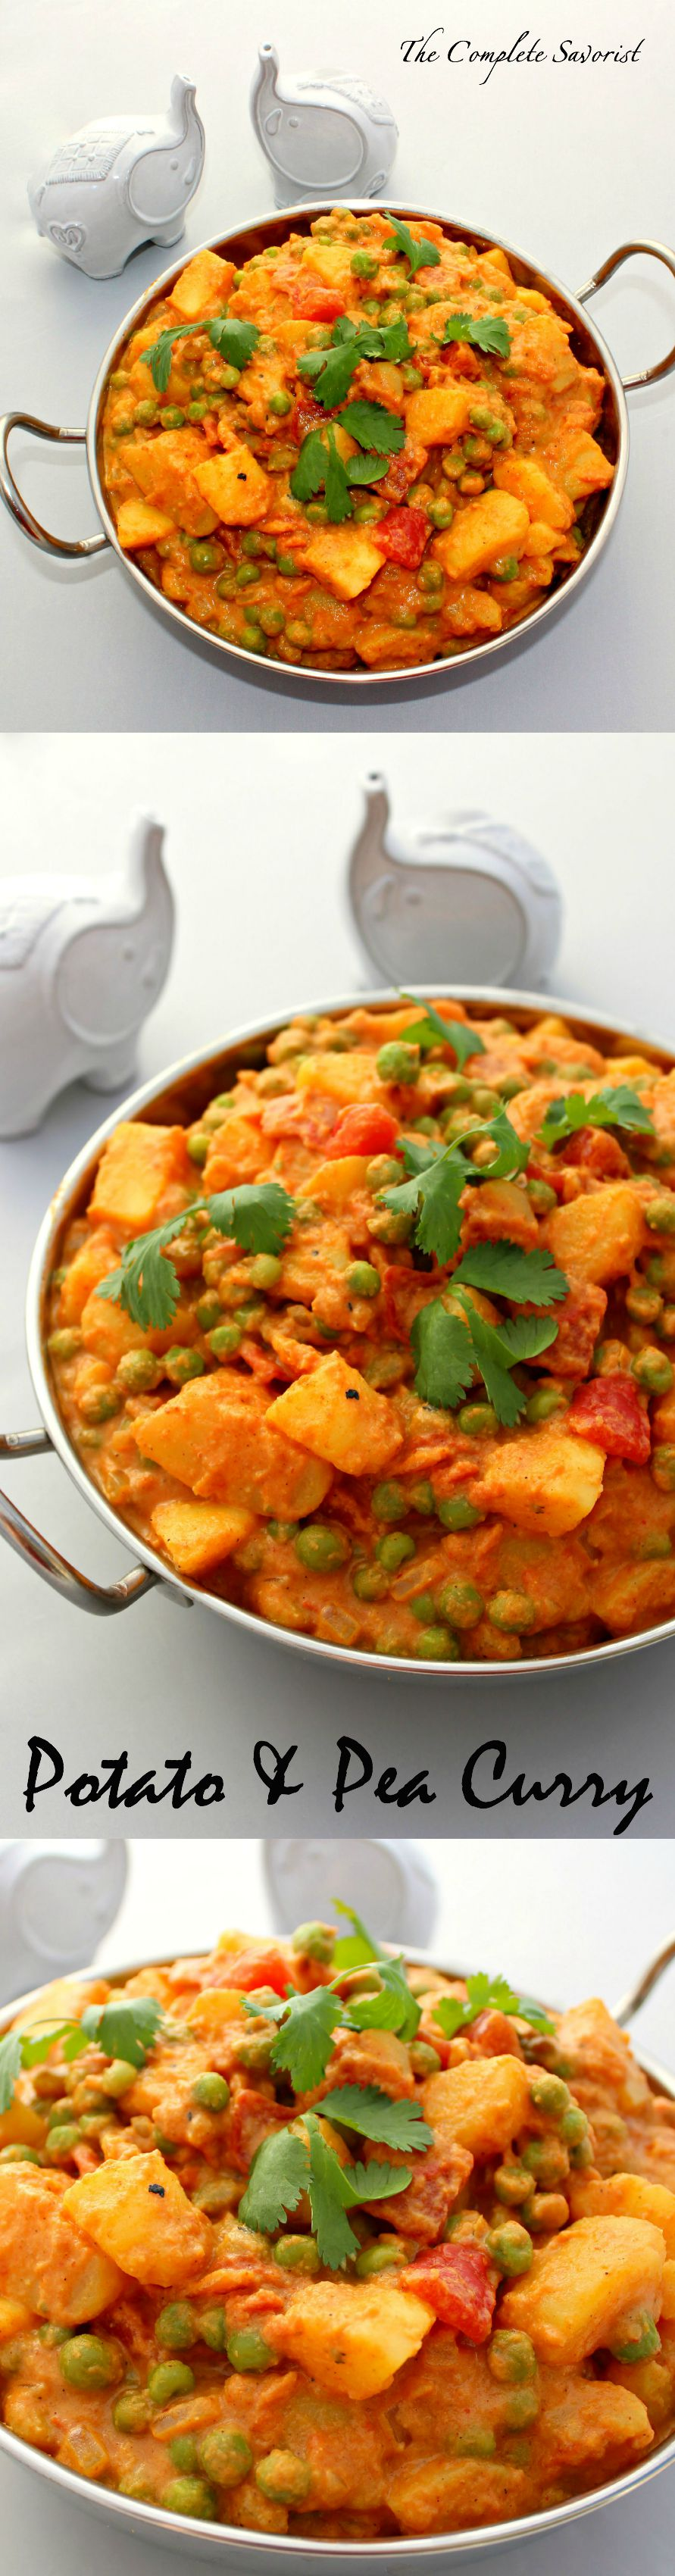 Potato and pea curry the complete savorist potato and pea curry fragrant indian spices enhance a creamy tomato sauce filled with luscious forumfinder Choice Image